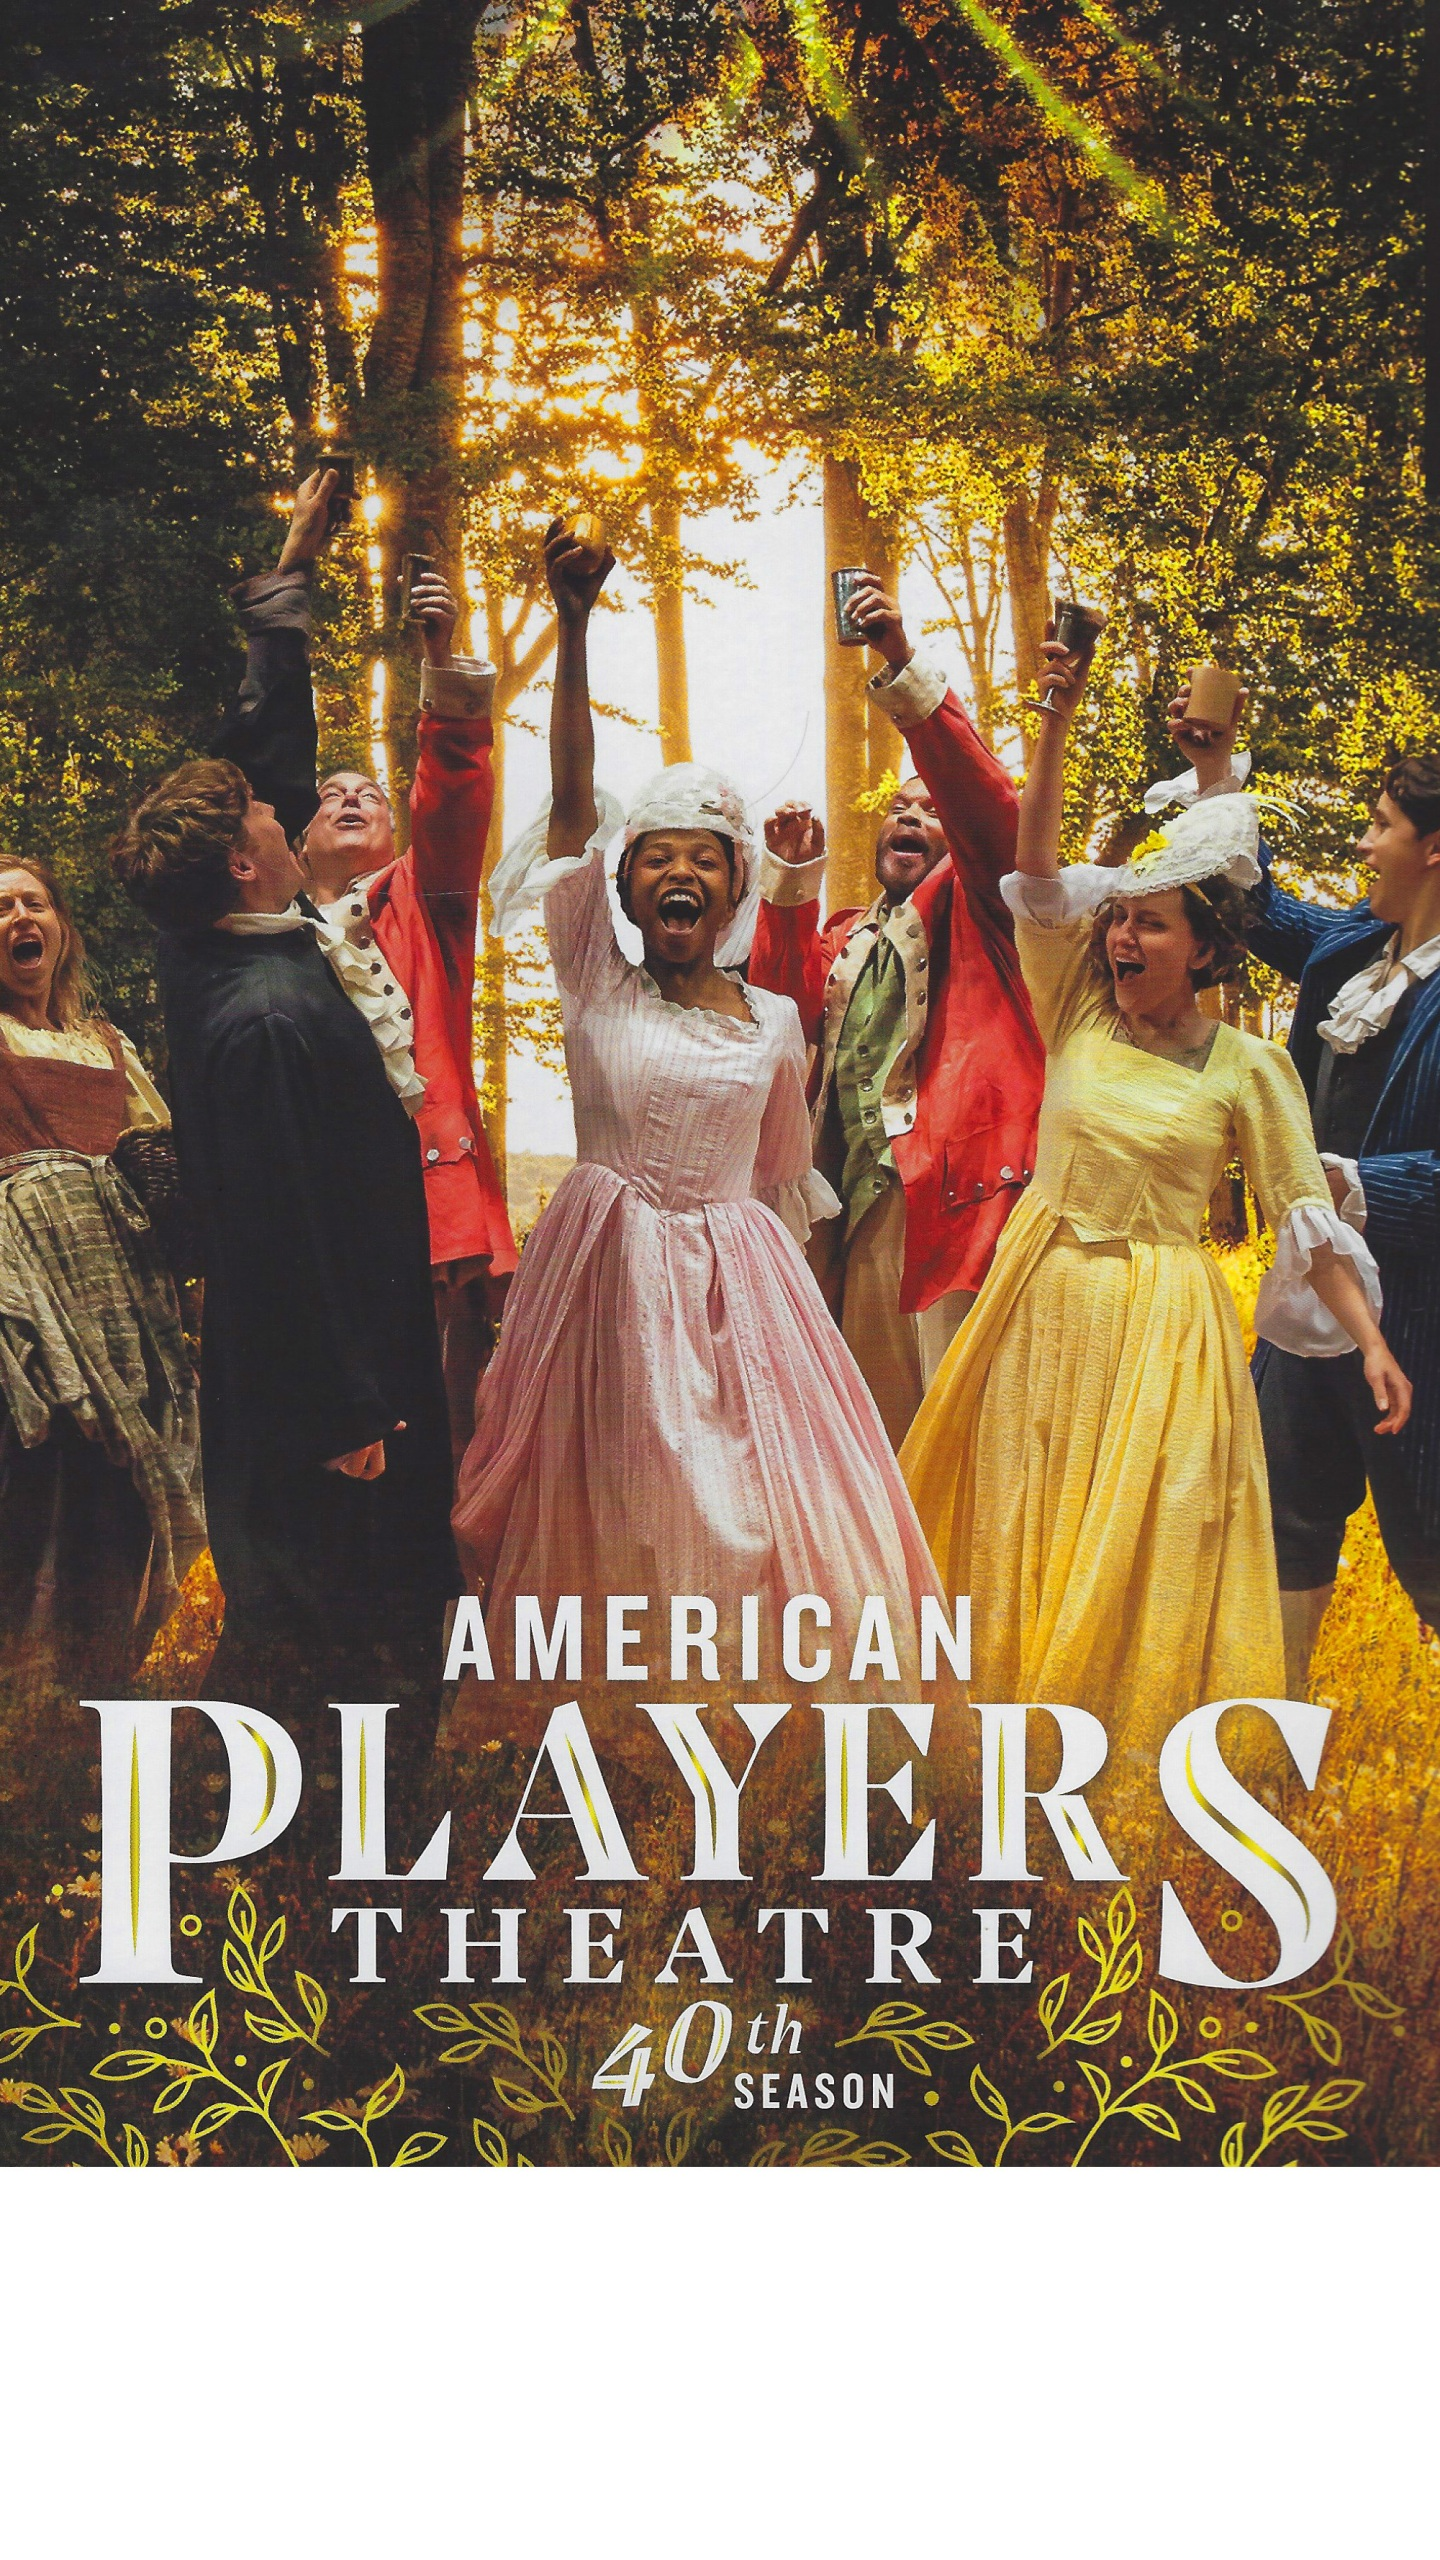 American Players Theatre 2019_1559049851405.jpg.jpg